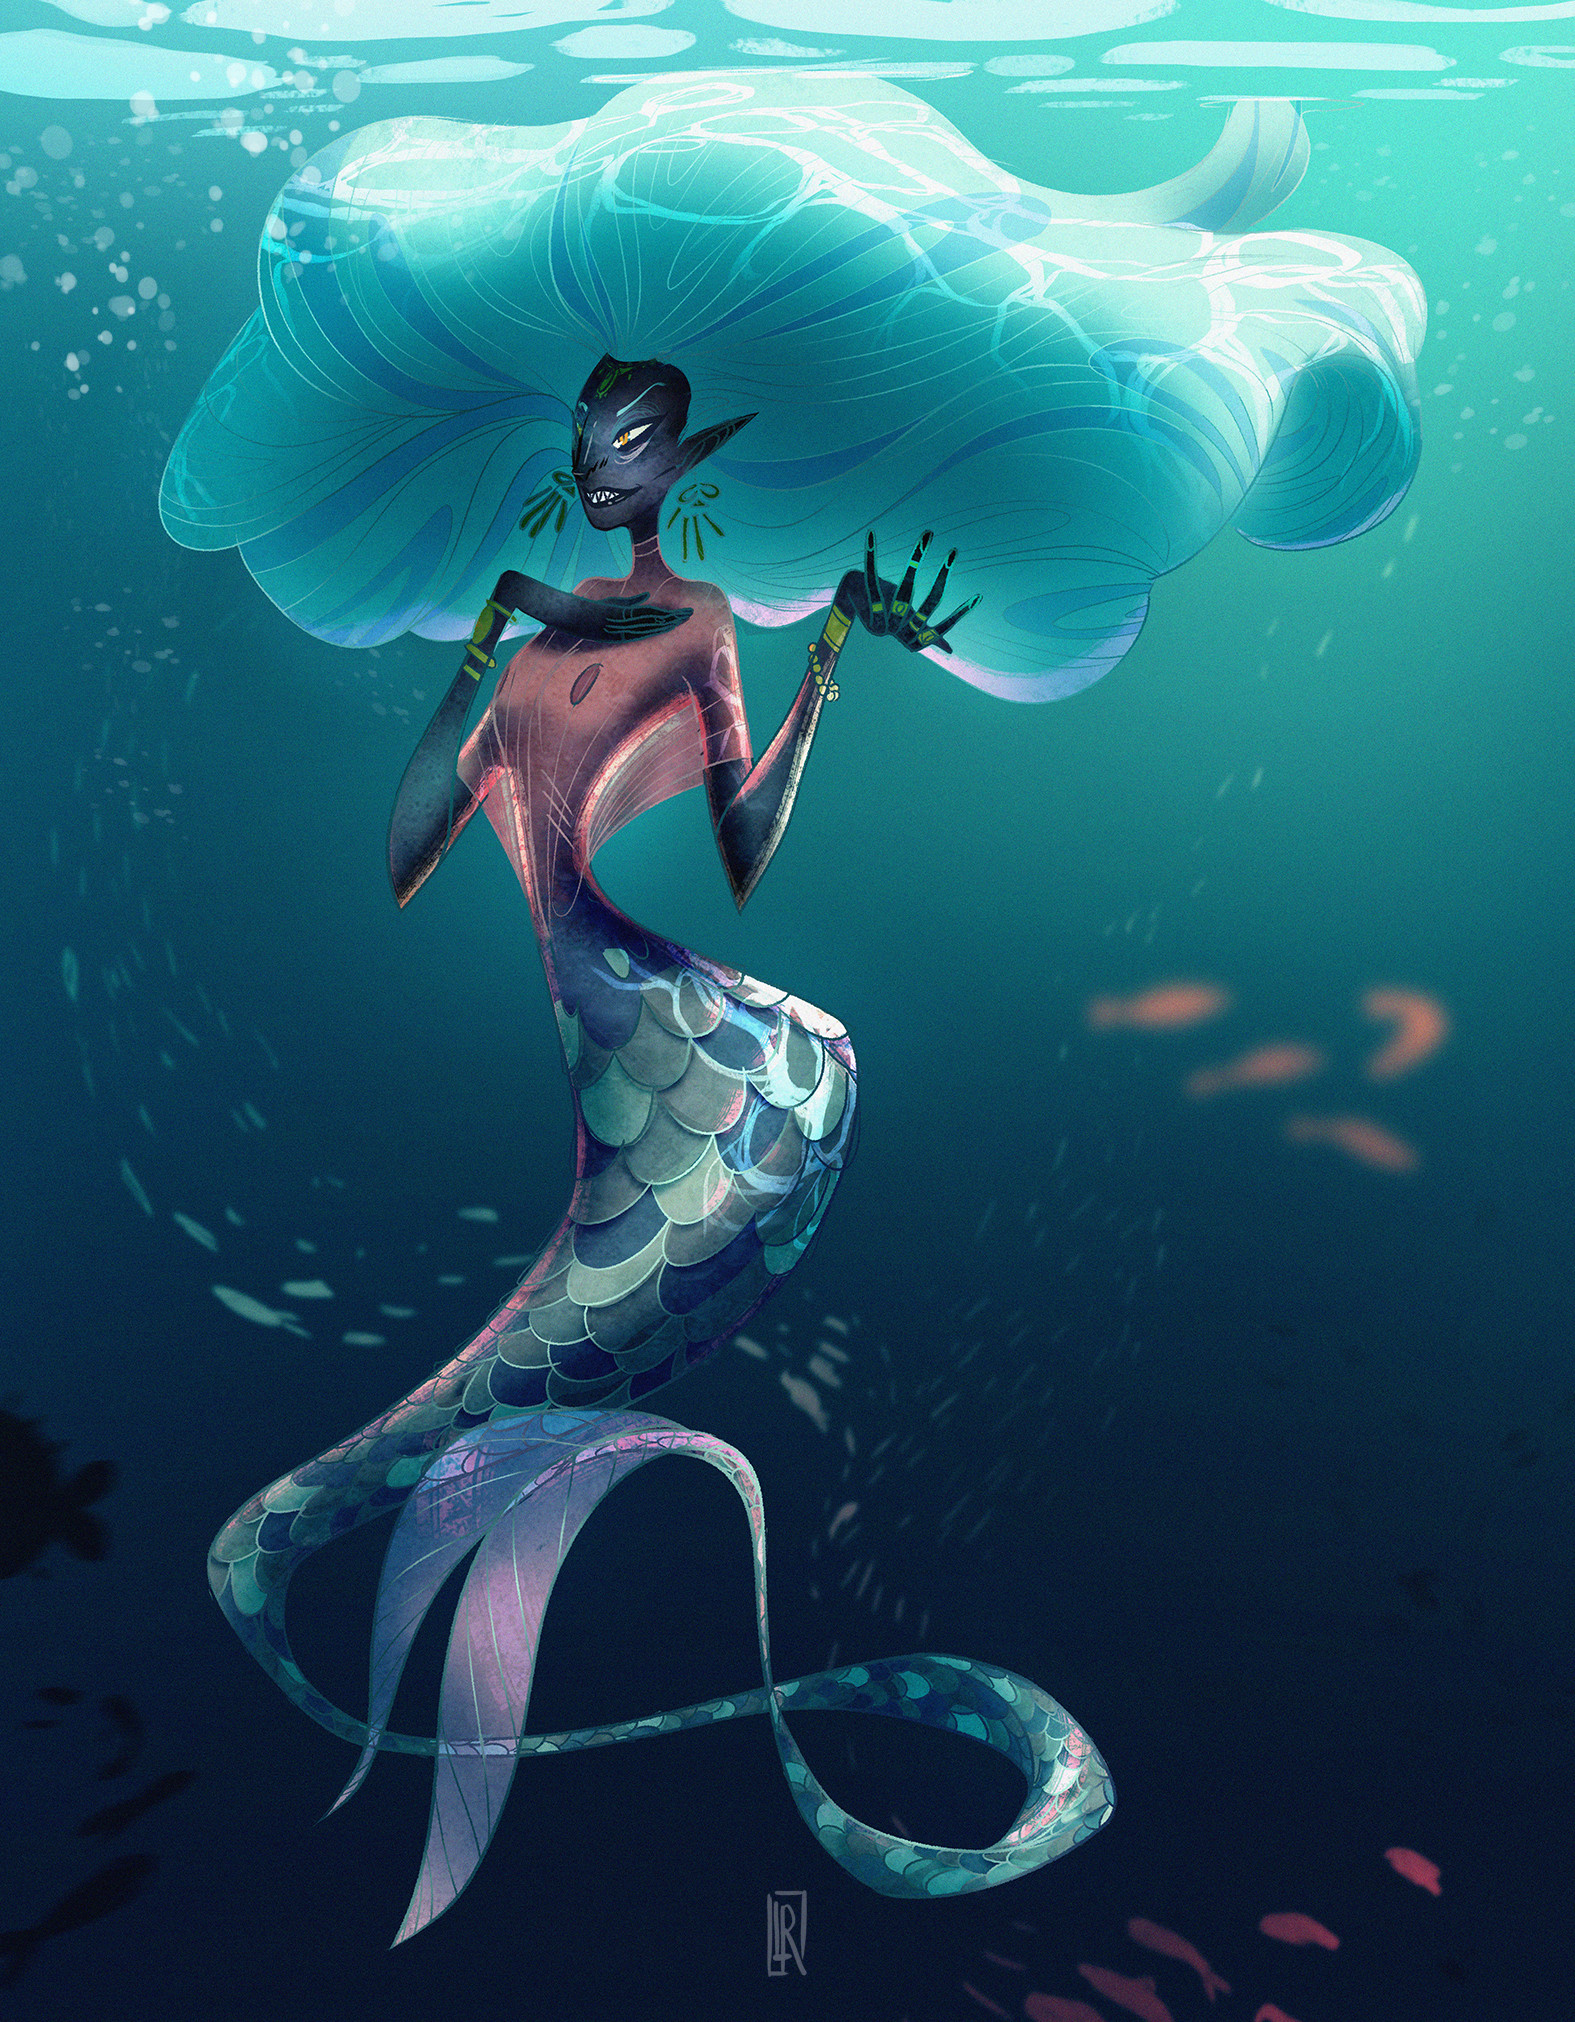 Character Design Challenge Themes : Leslie rosique character design challenge mermaid